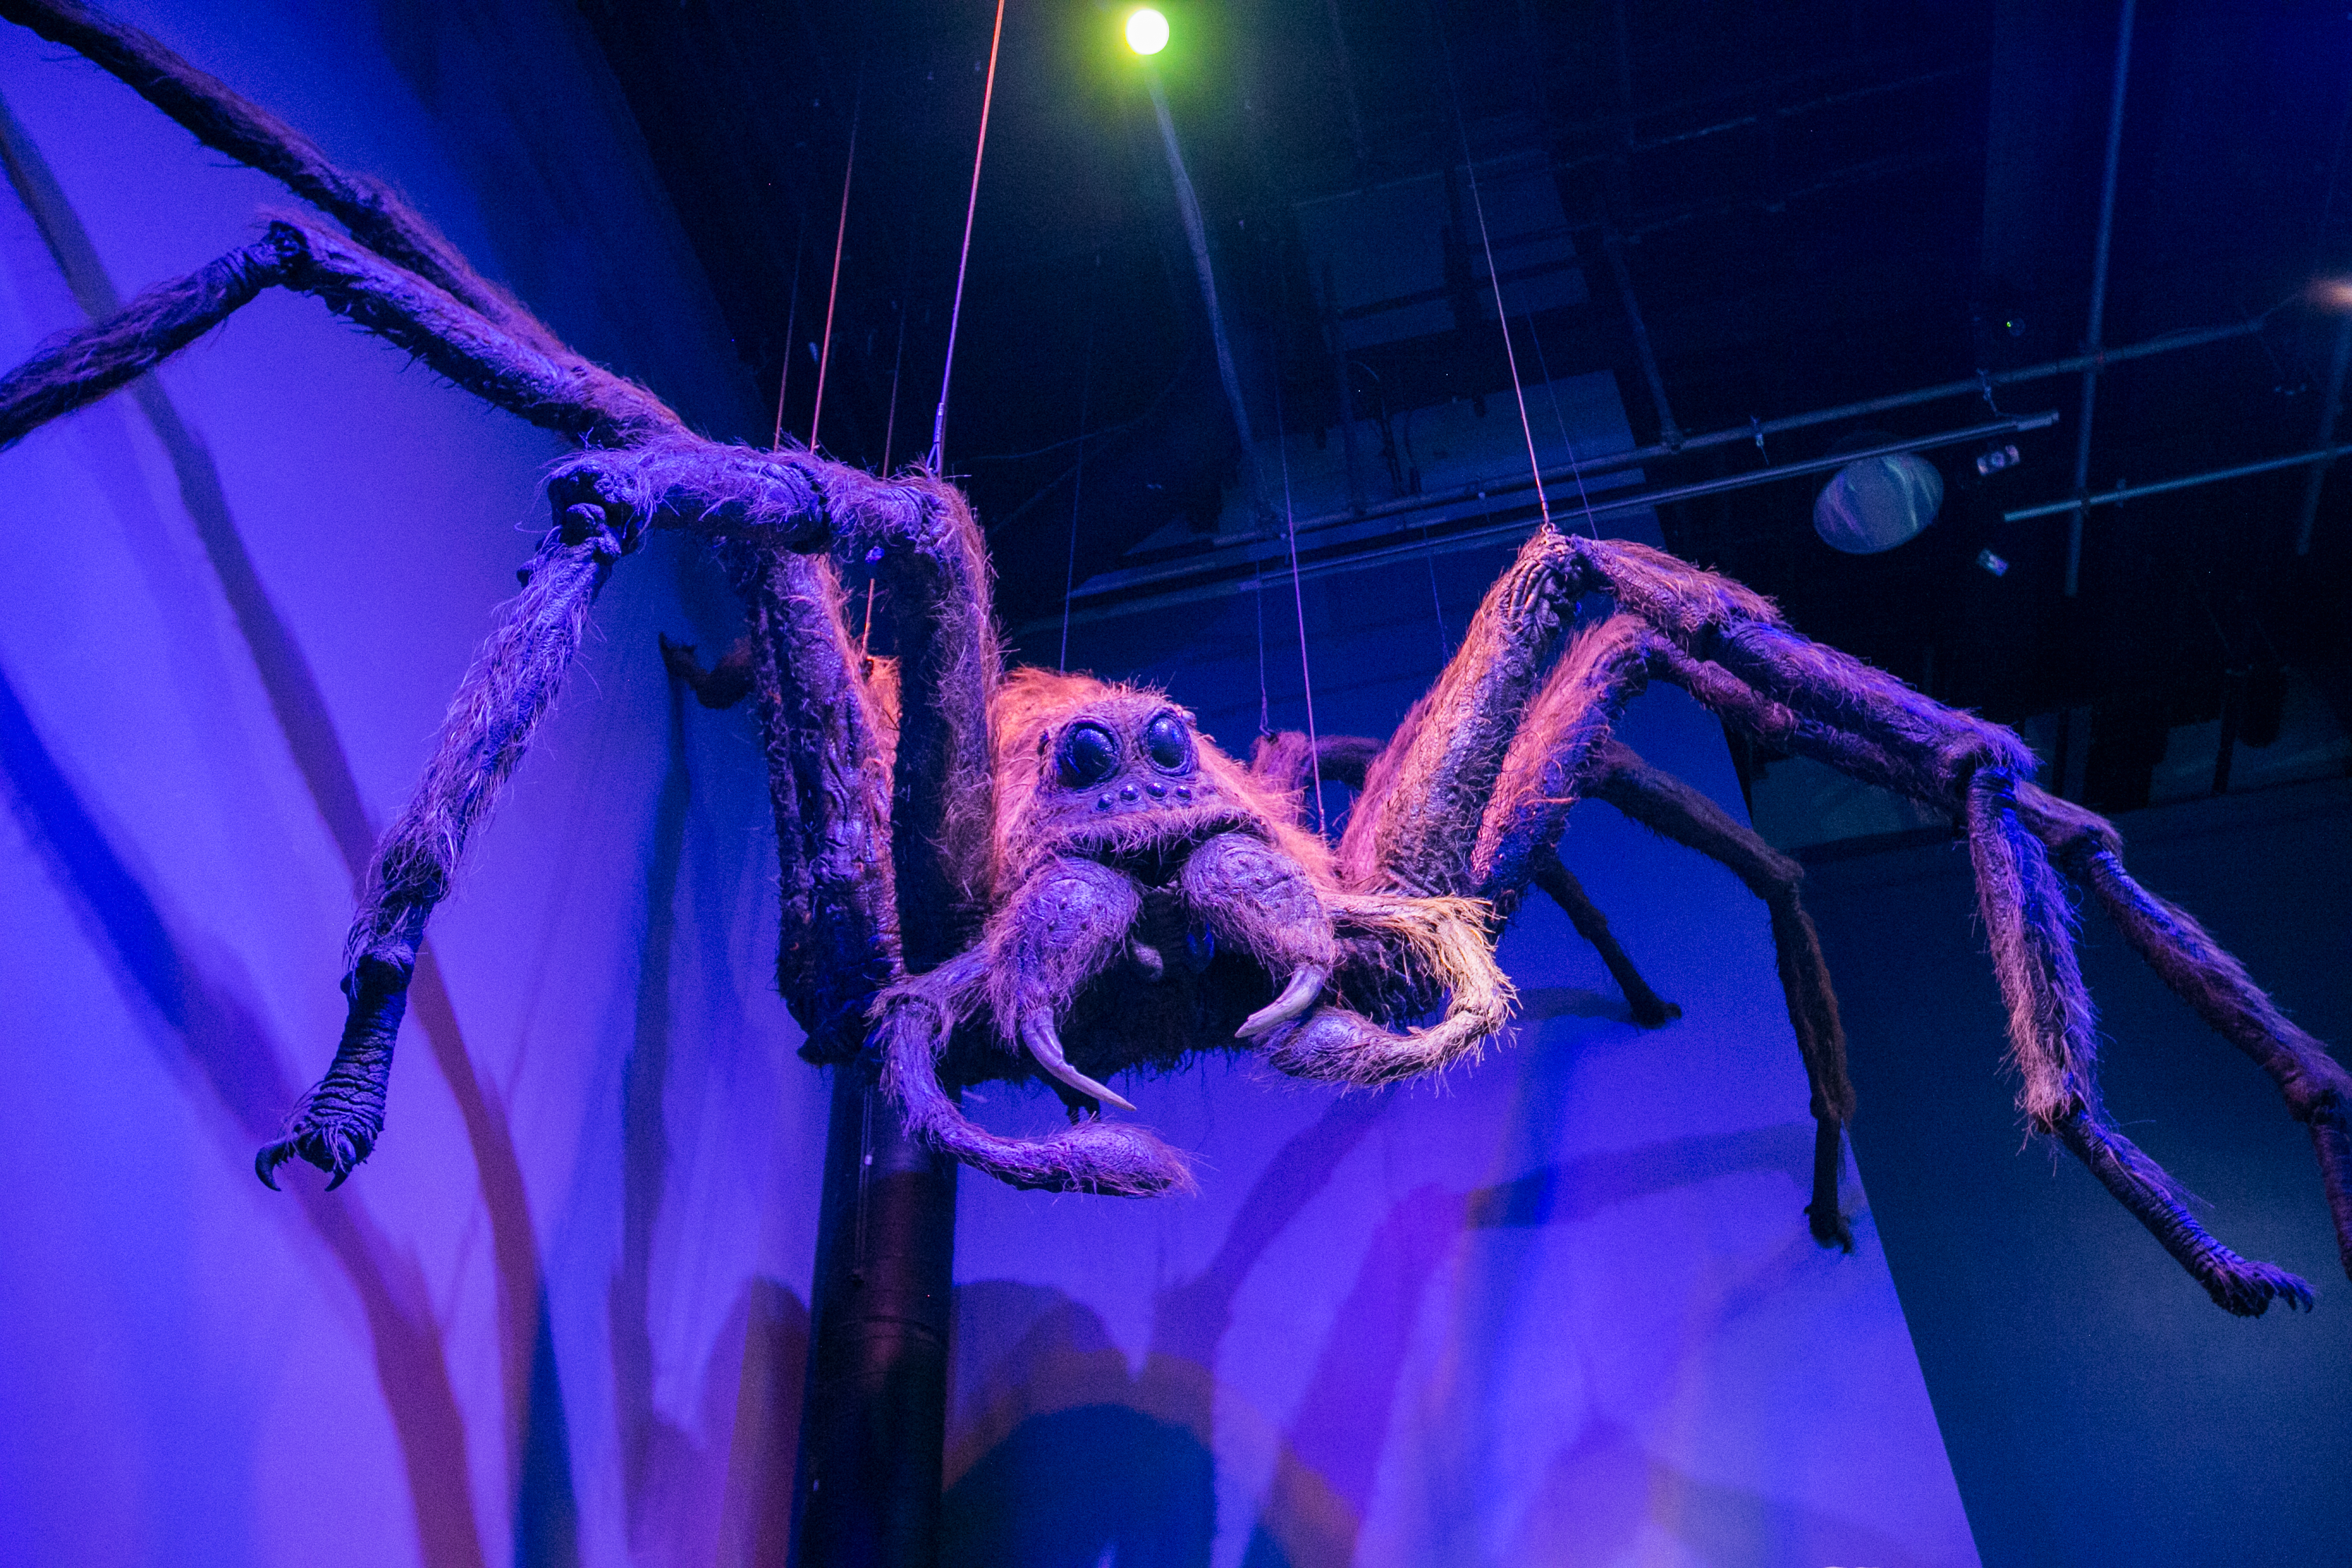 harry-potter-studio-tour-spider-aragog